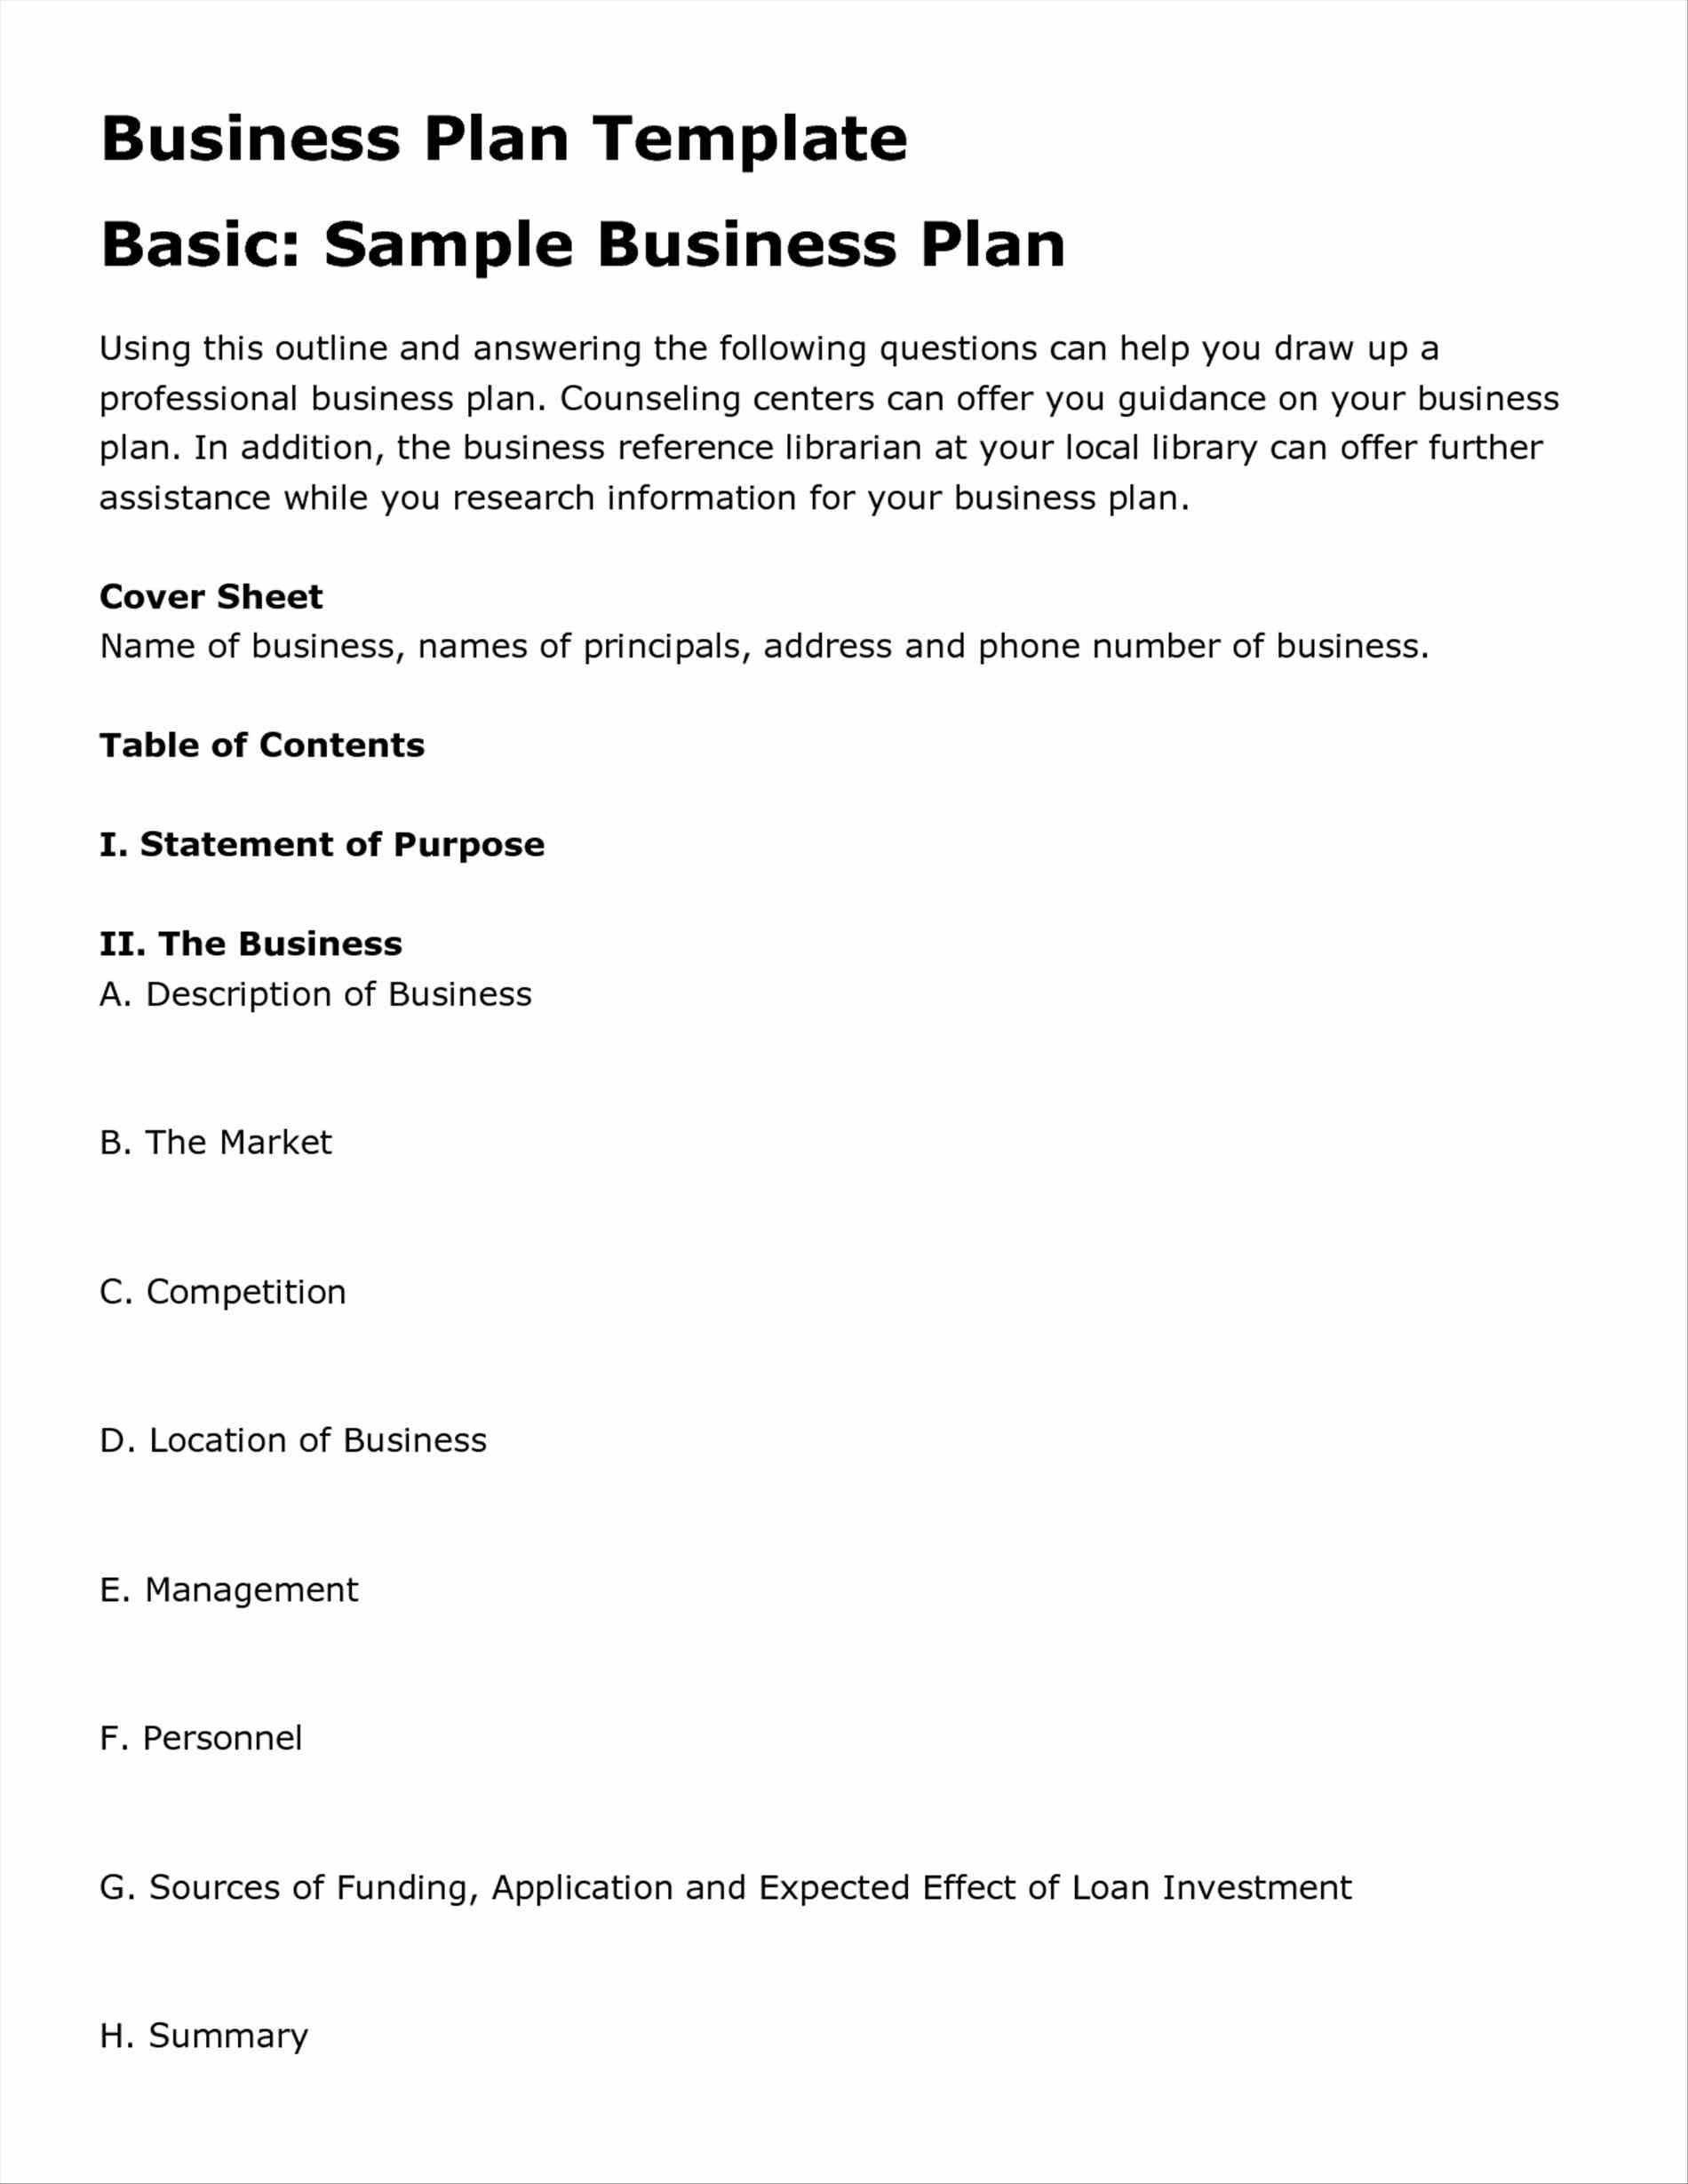 Business plan template restaurant templates in word excel pdf free business plan template restaurant templates in word excel pdf free cafe business plan template restaurant business plan templates in word excel wajeb Images